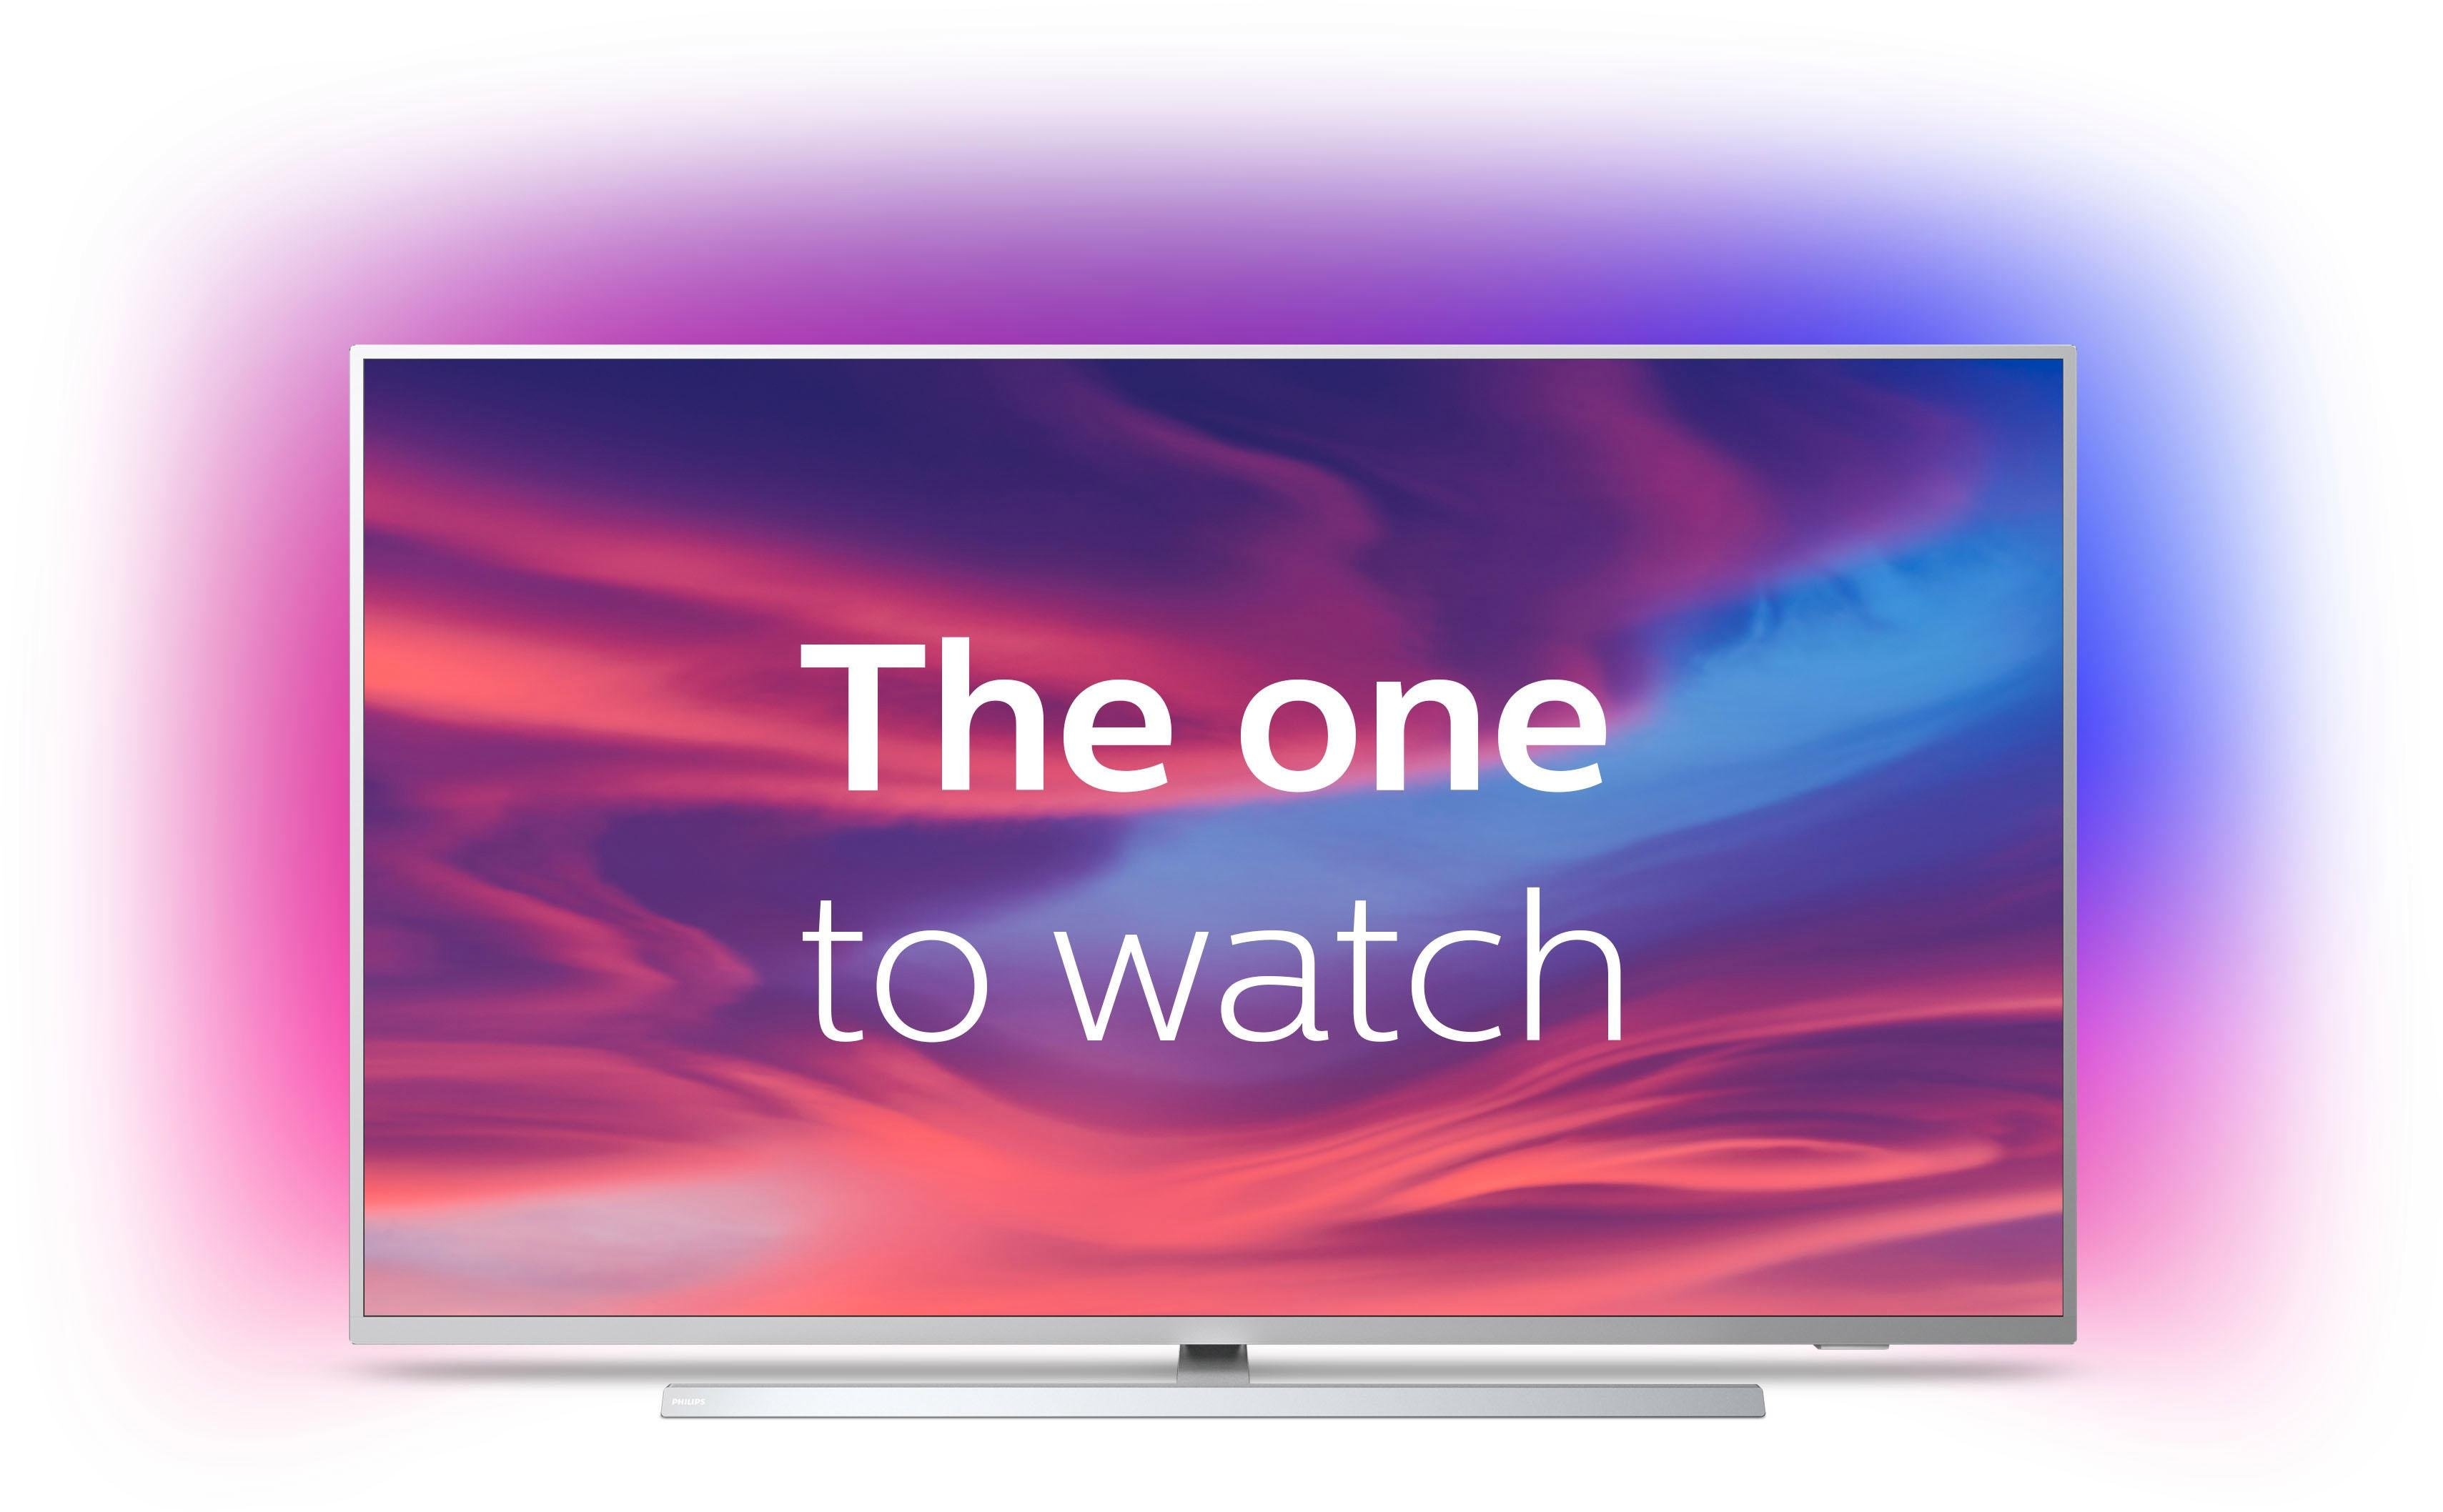 Philips 'The One' 43PUS7304/12 led-tv (108 cm / 43 inch), 4K Ultra HD, smart-tv bestellen: 30 dagen bedenktijd